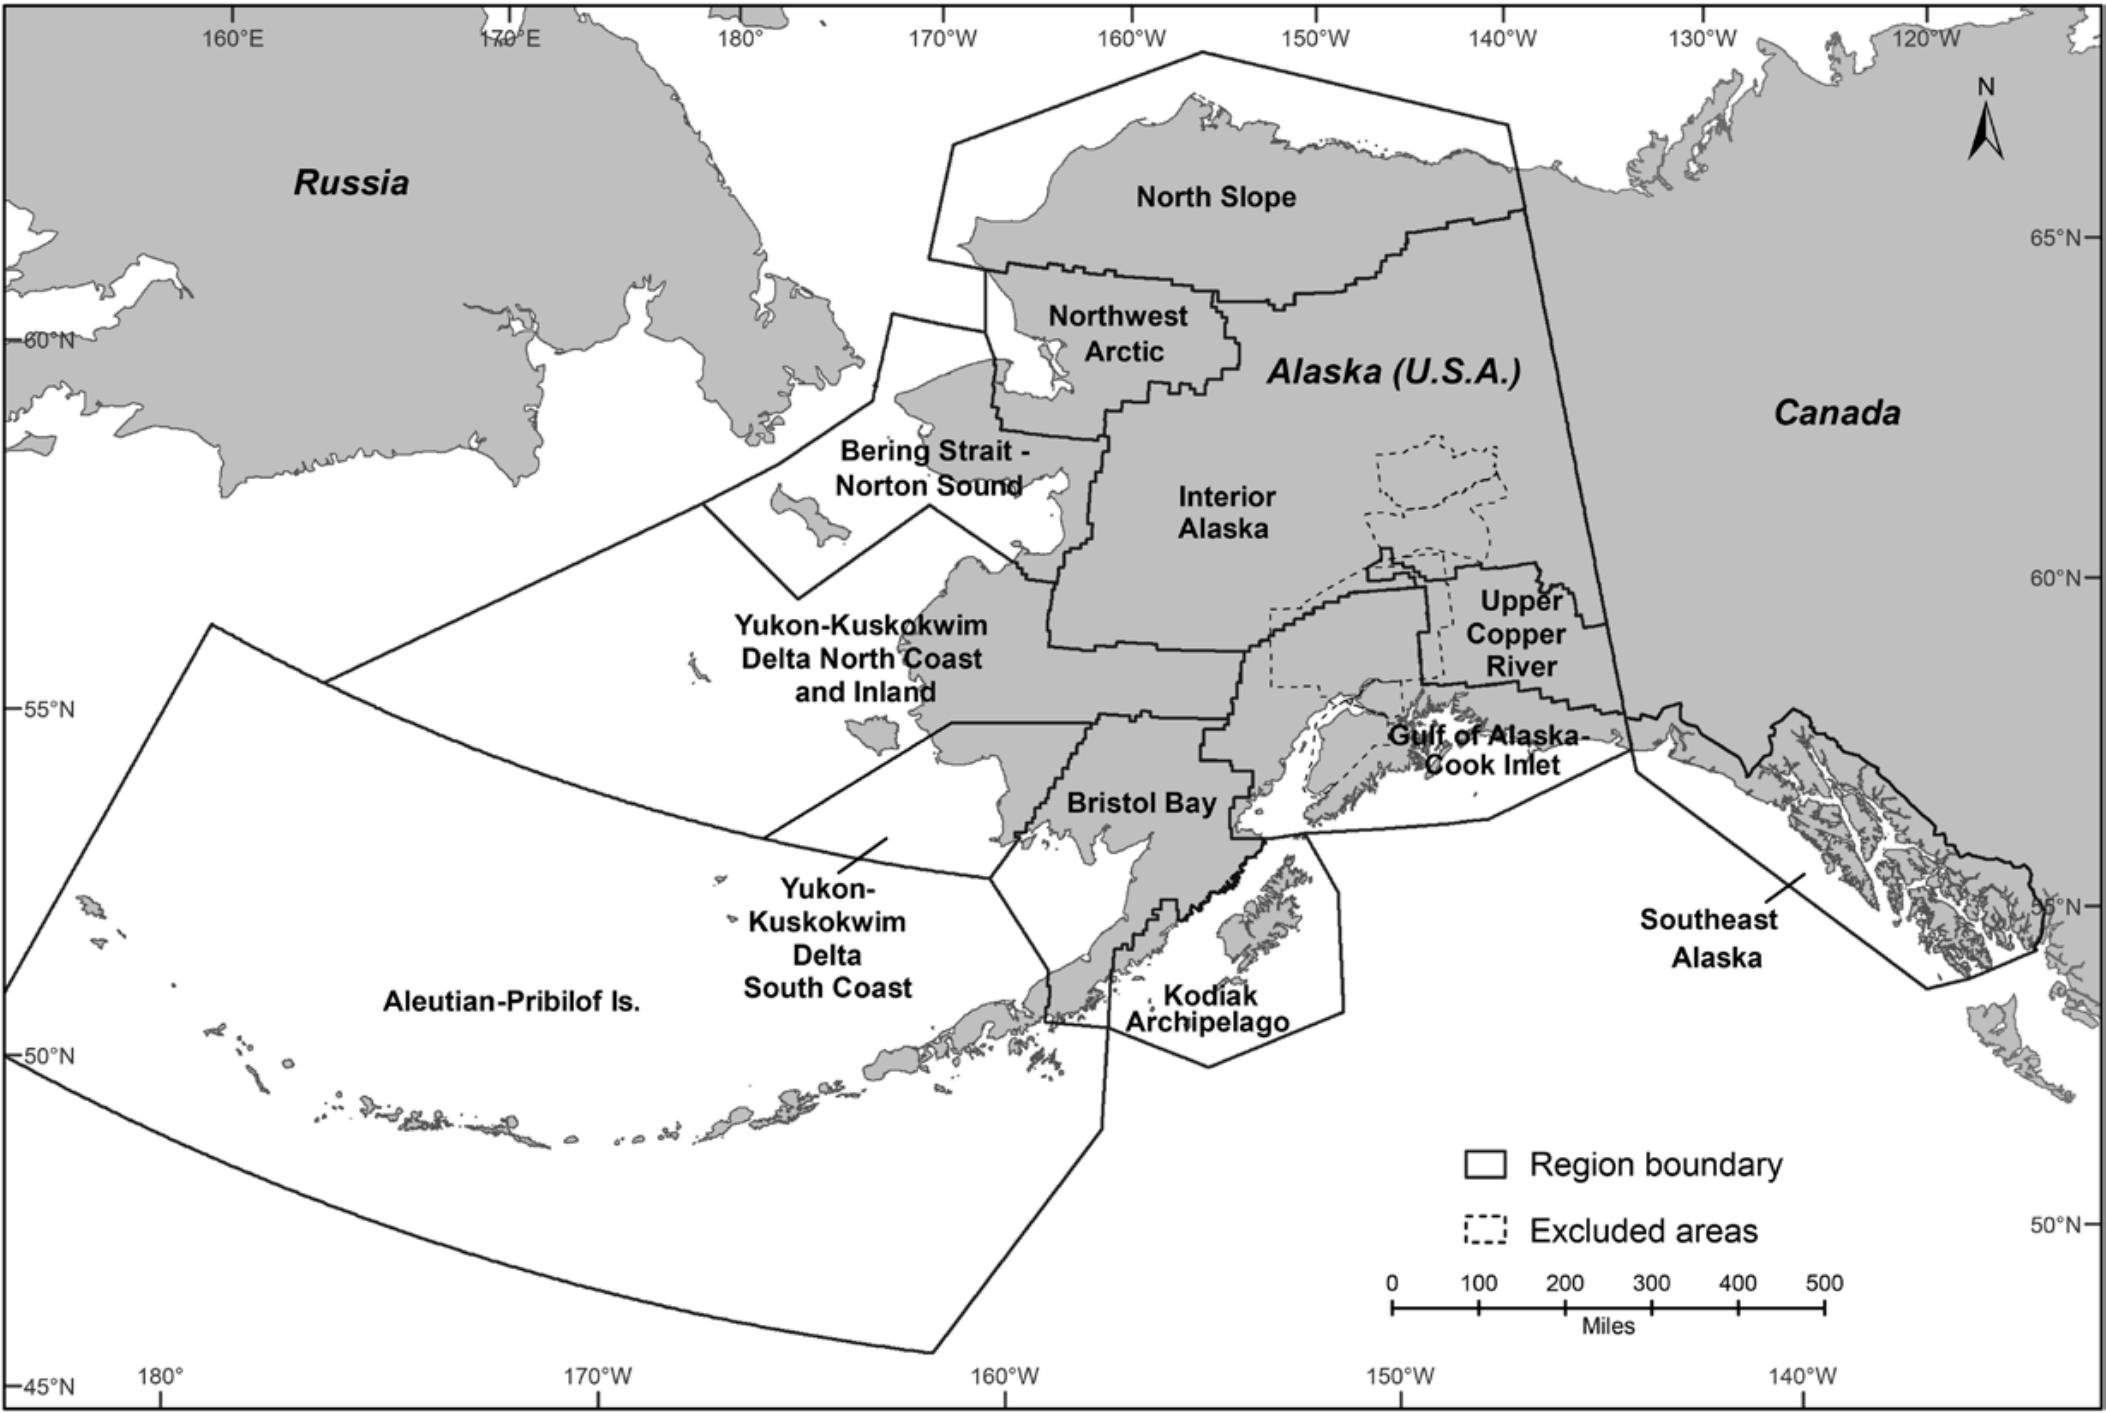 Shorebird Subsistence Harvest And Indigenous Knowledge In Alaska Informing Harvest Management And Engaging Users In Shorebird Conservation